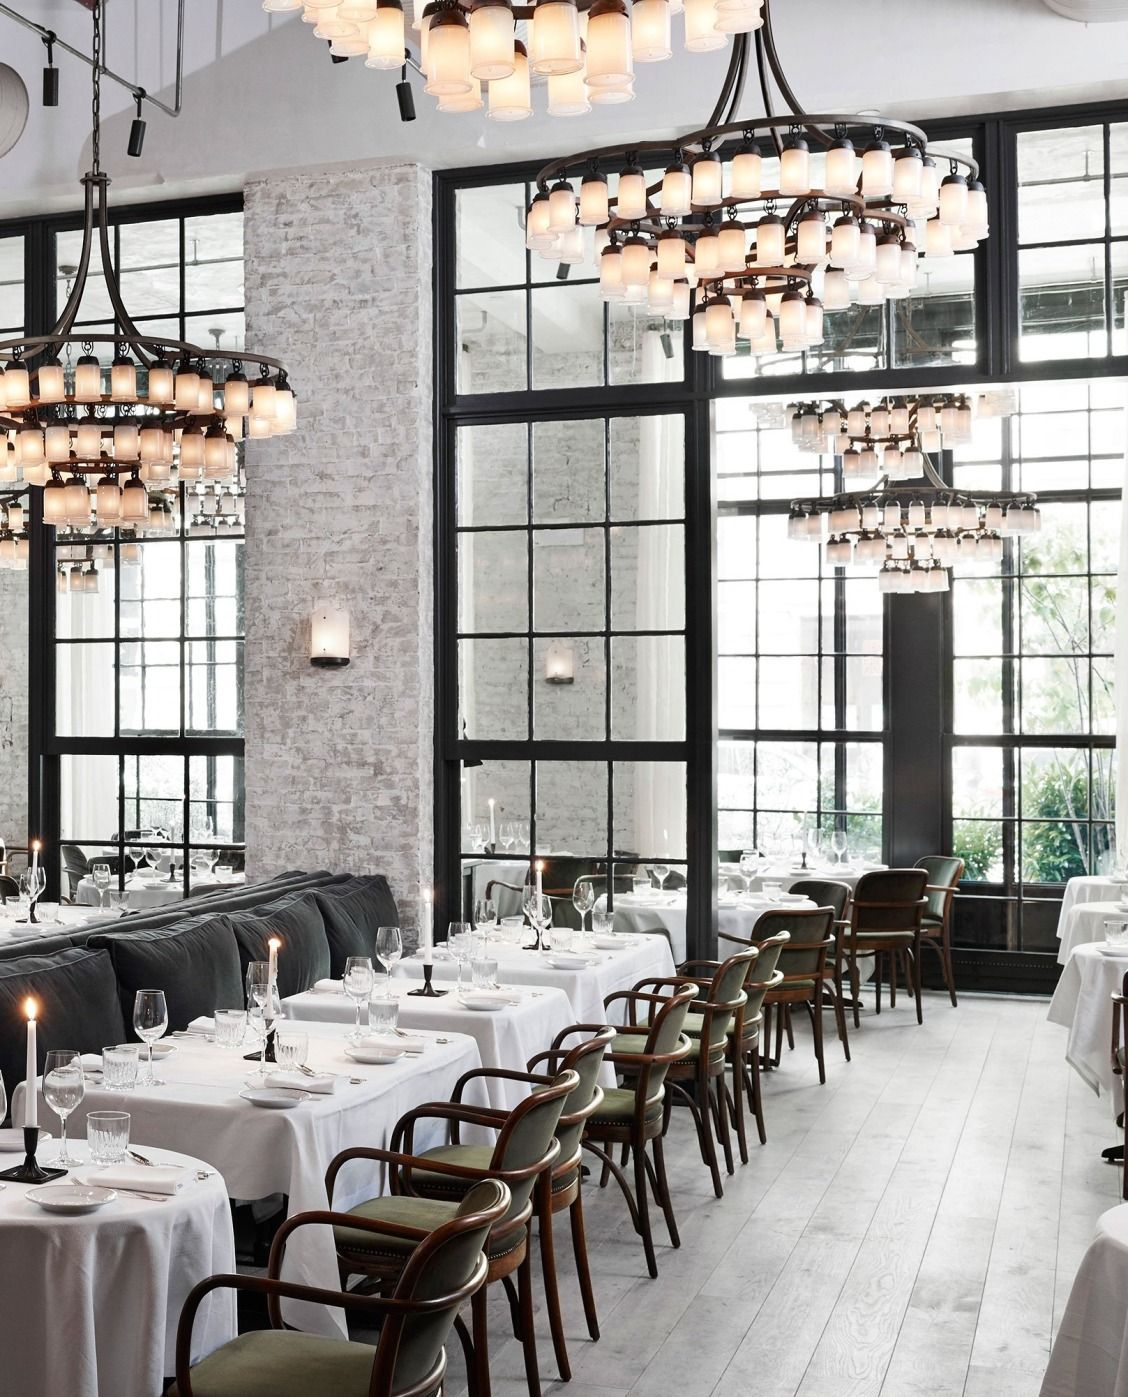 New York Is A City Filled With Restaurants; However, Every Year A New Gem